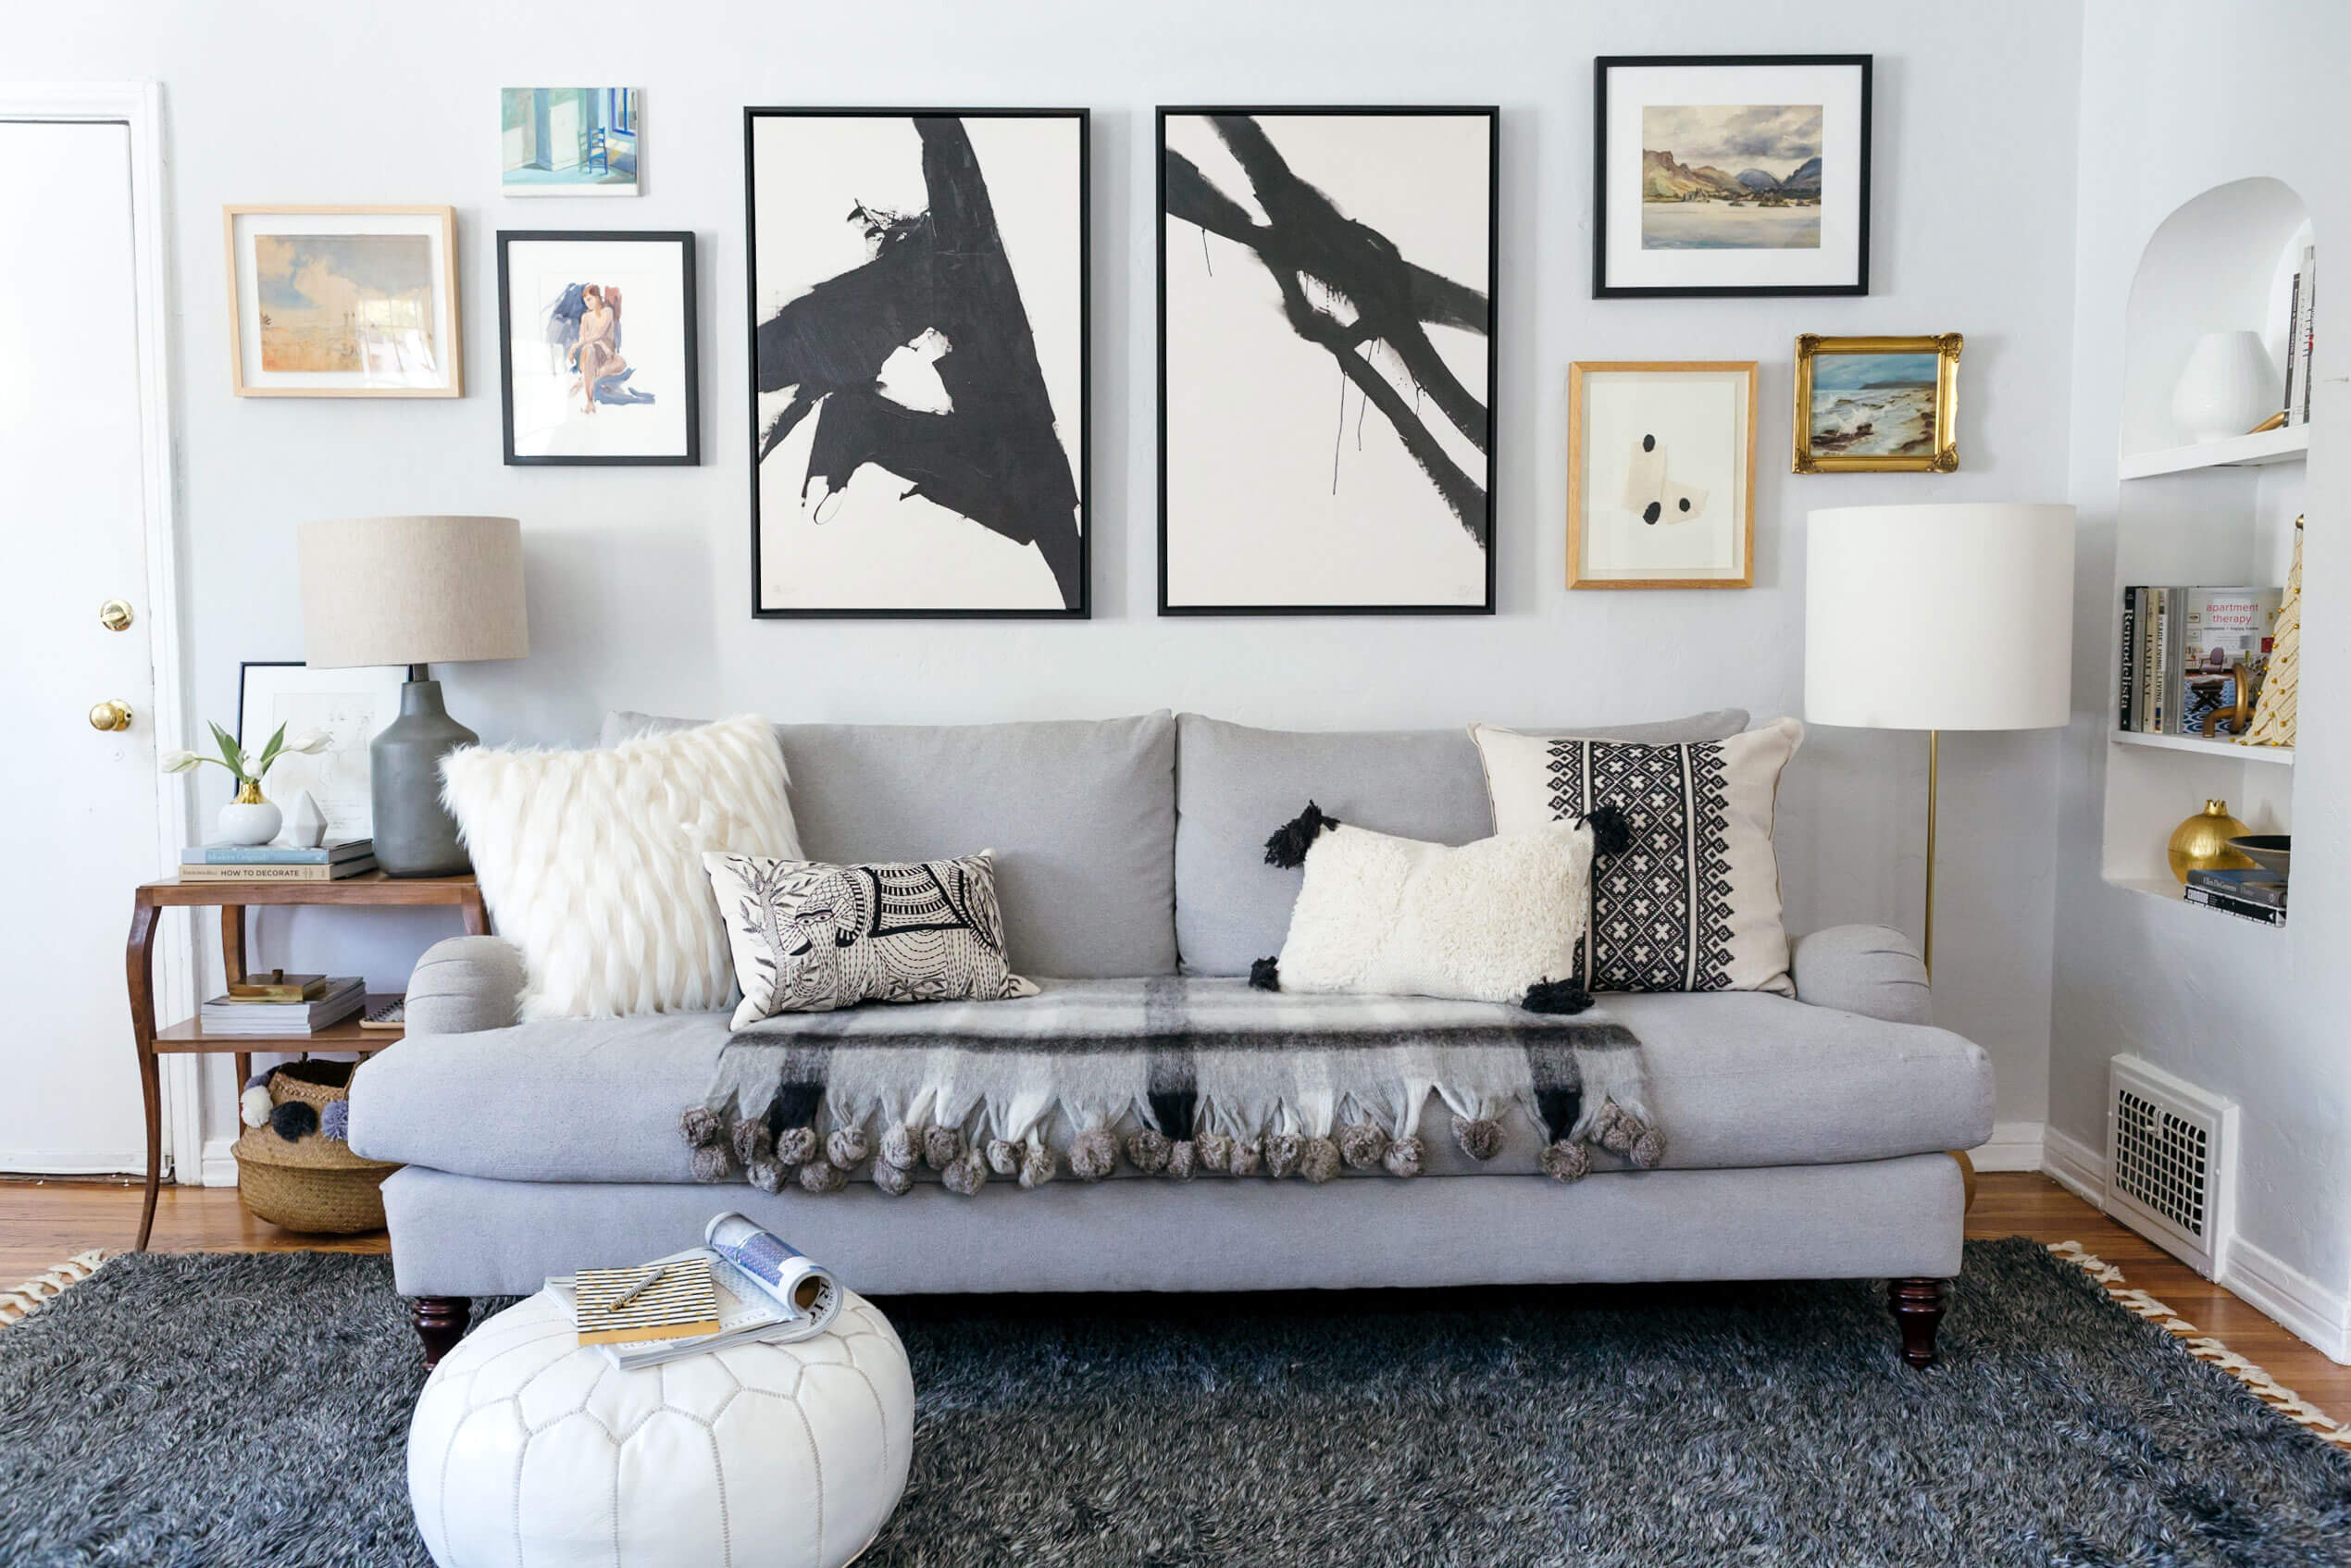 GINNY_MACDONALD_SOFA_STYLING